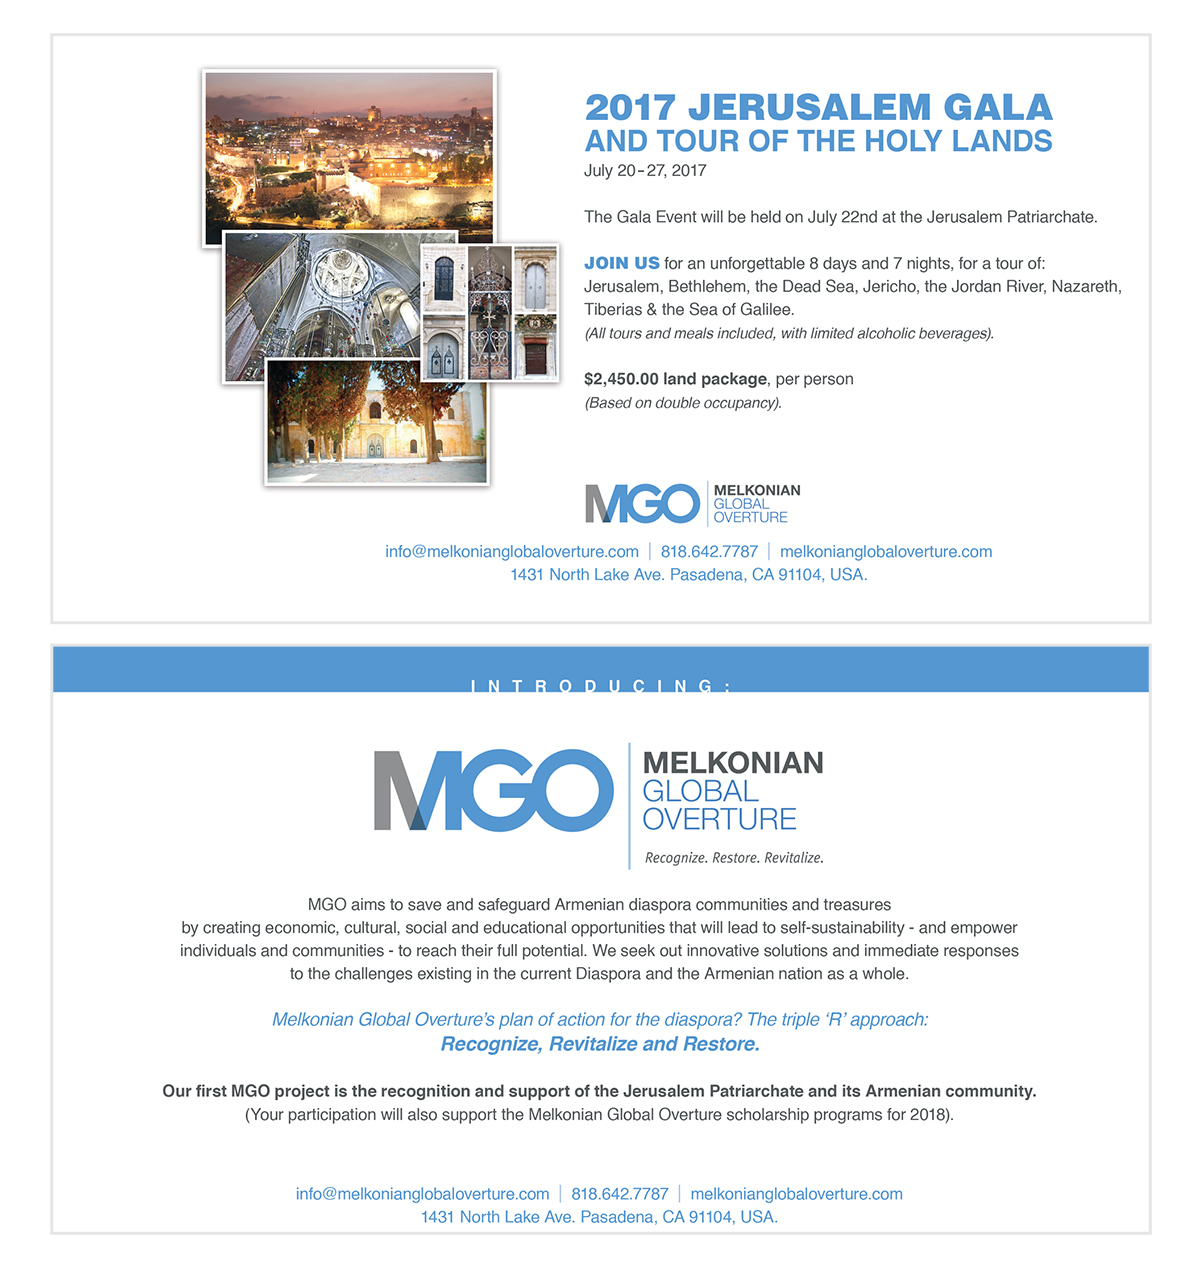 Melkonian Global Overture - Non-profit organization supporting Historical & Iconic Armenian Institutions